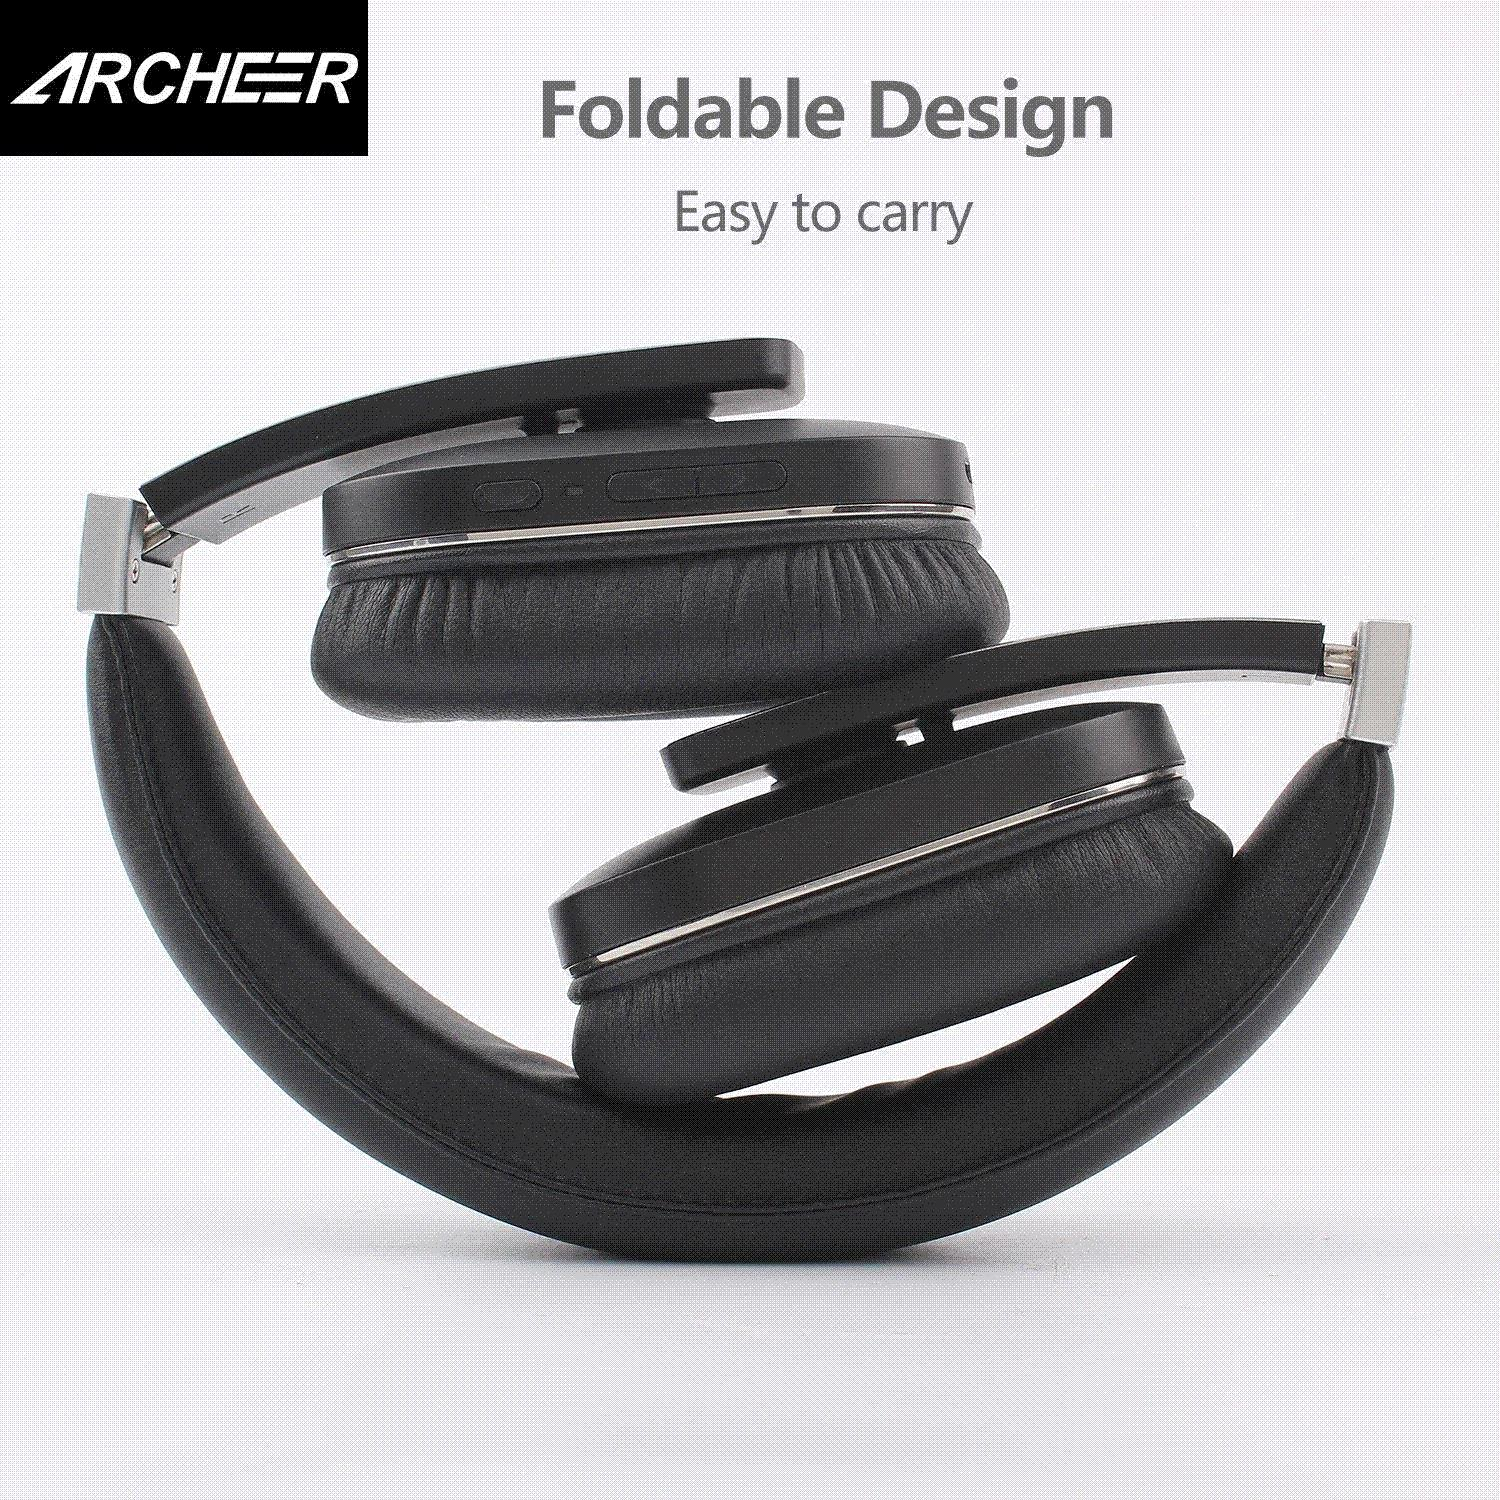 f4707438ec4 New Archeer AH07 NFC Bluetooth Headphone Wireless Stereo Foldable Headphone  With Mic Soft Ear Cups Adjustable Headset Noise Cancelling Headphones  Headset ...